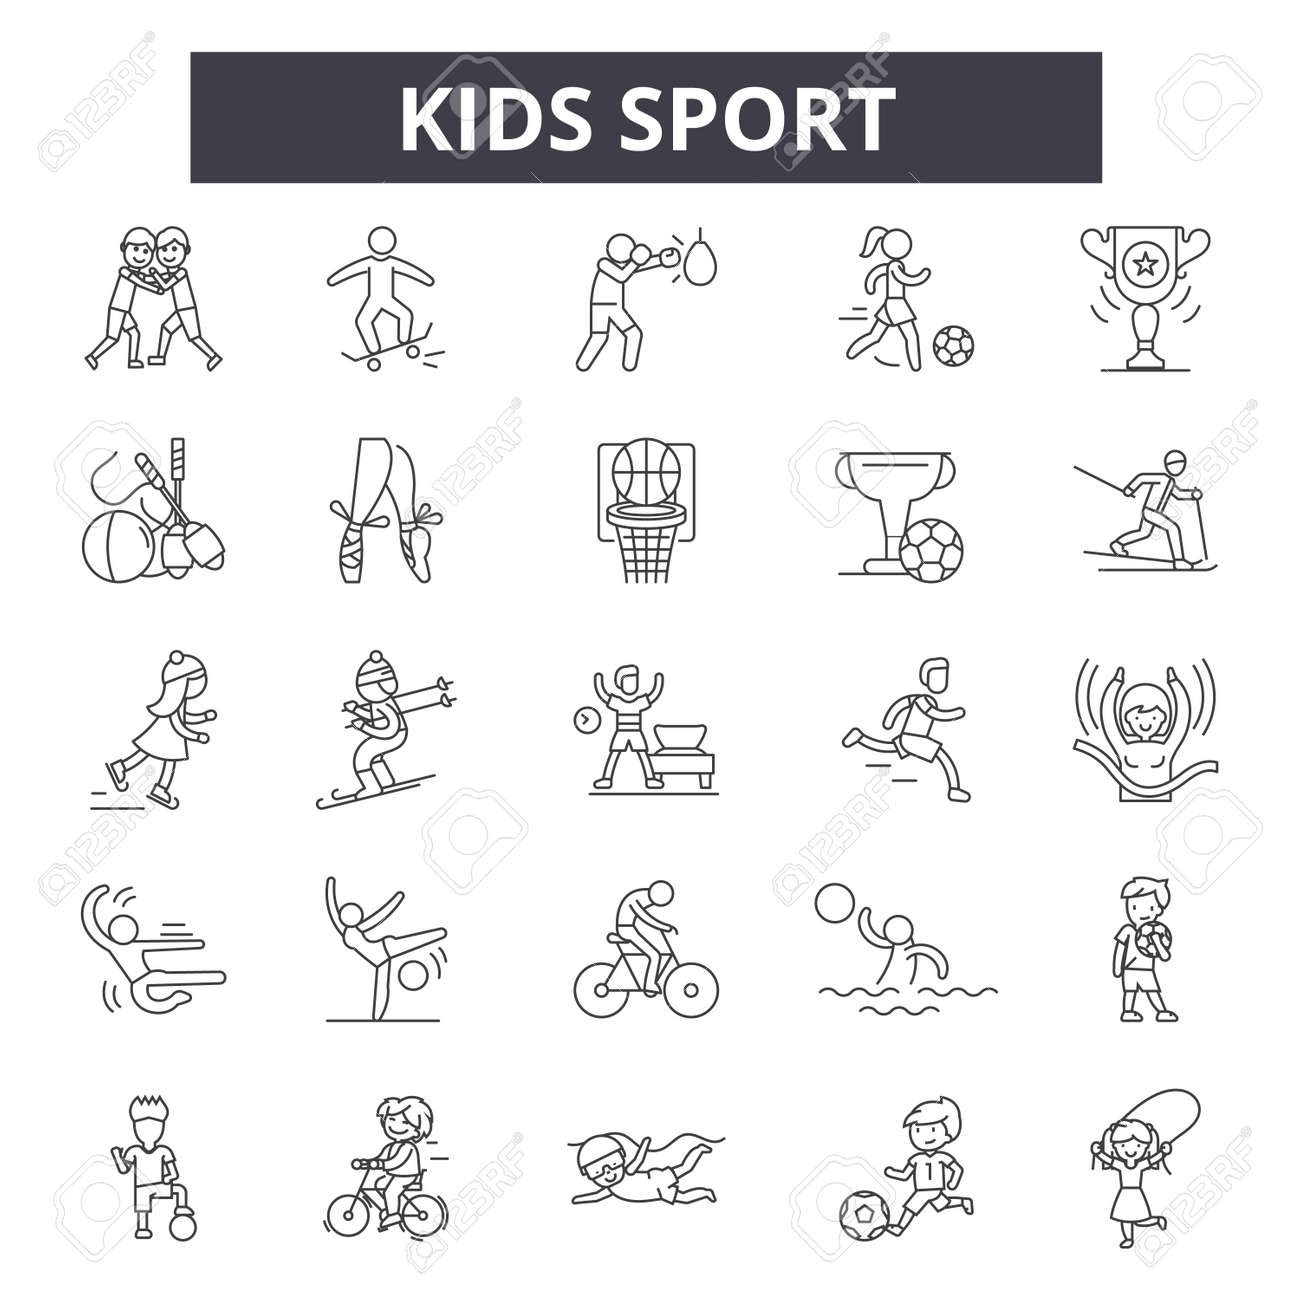 Free Athletic Cliparts, Download Free Clip Art, Free Clip Art on Clipart  Library